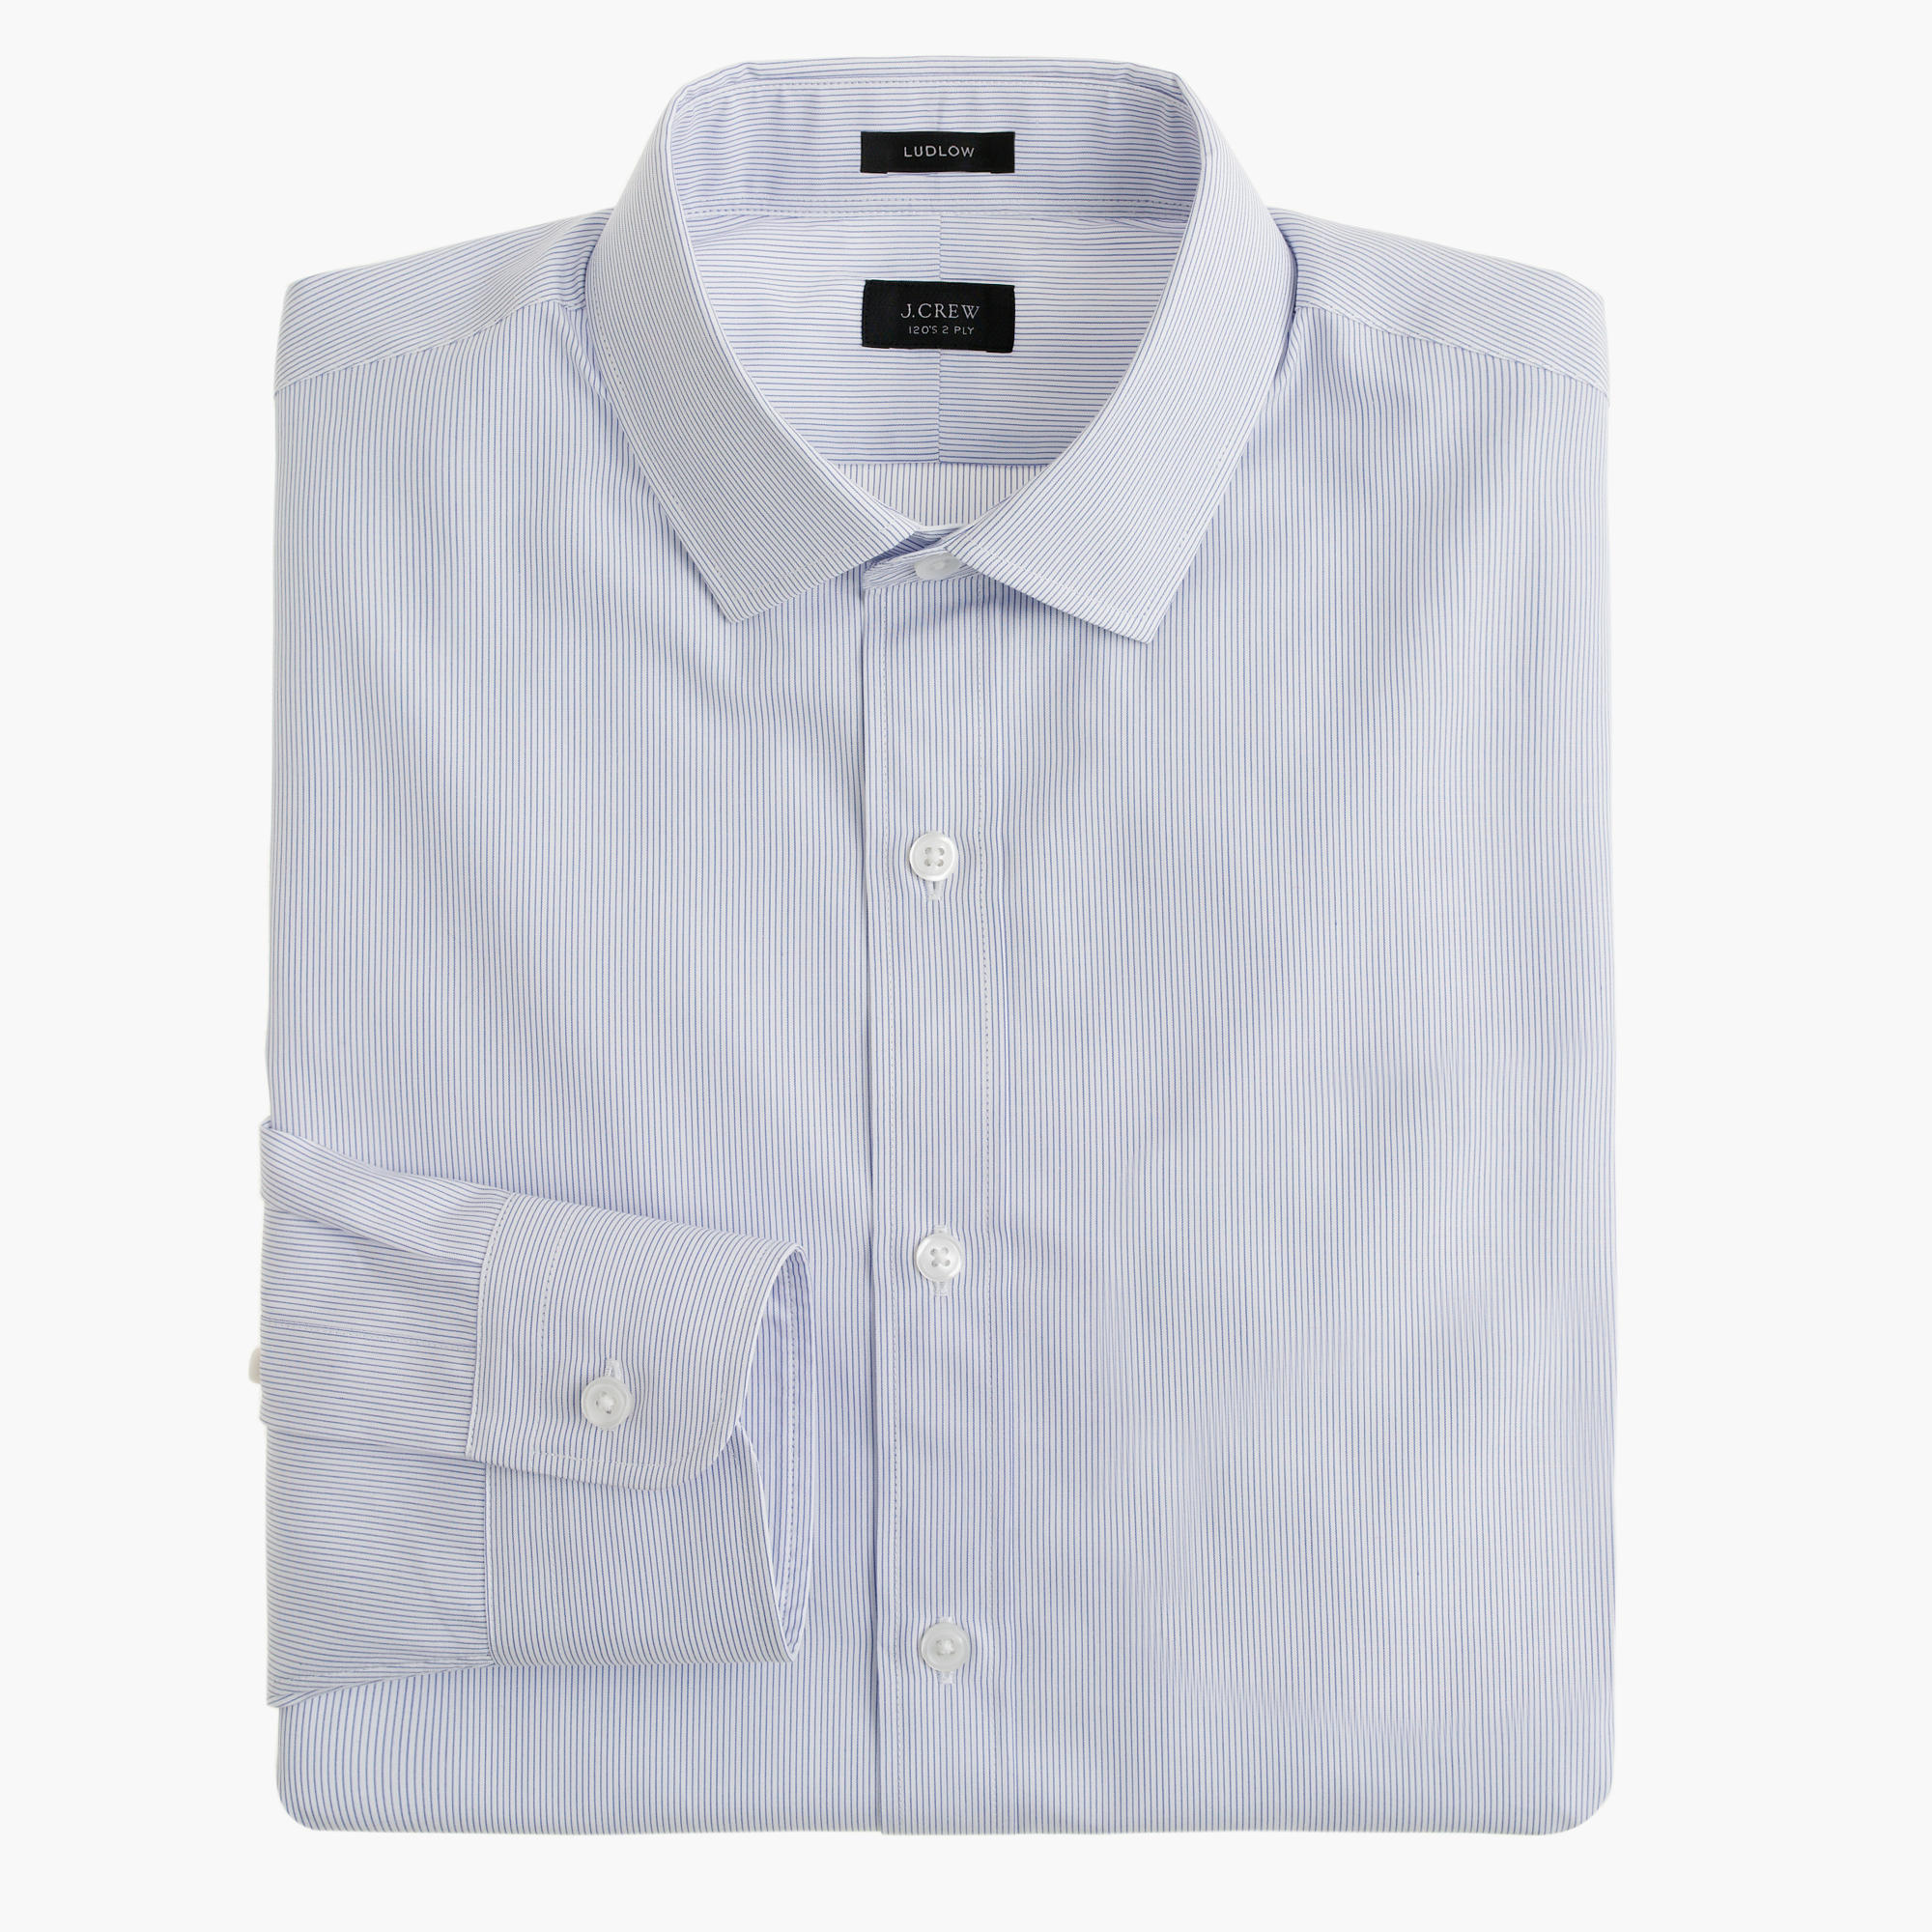 Ludlow spread collar shirt in atlantic stripe men 39 s for Men s spread collar shirts